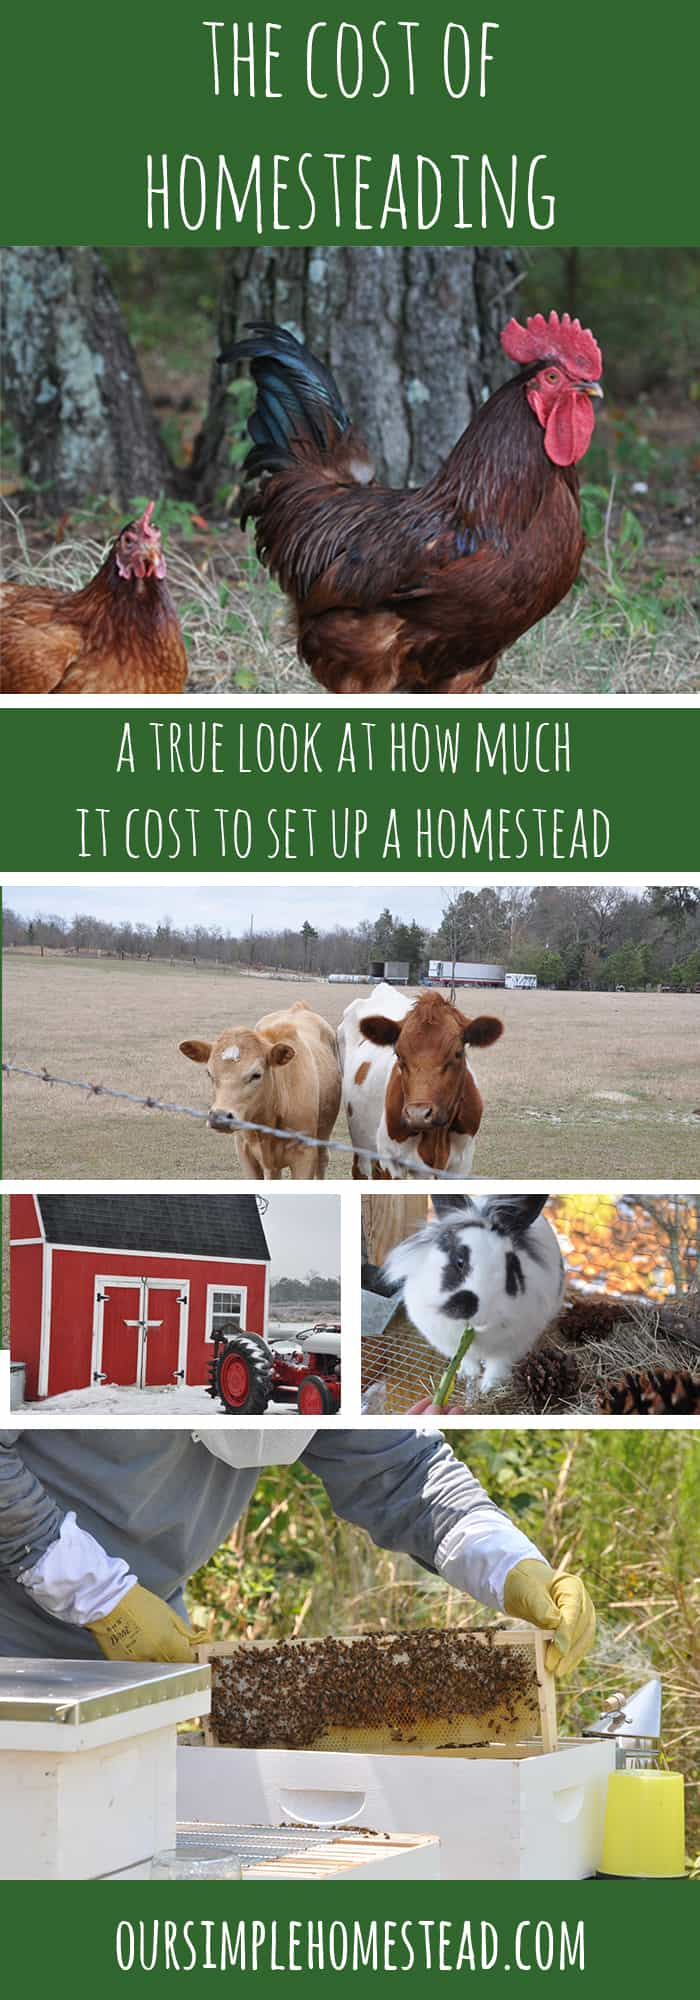 The Cost of Setting up a Homestead